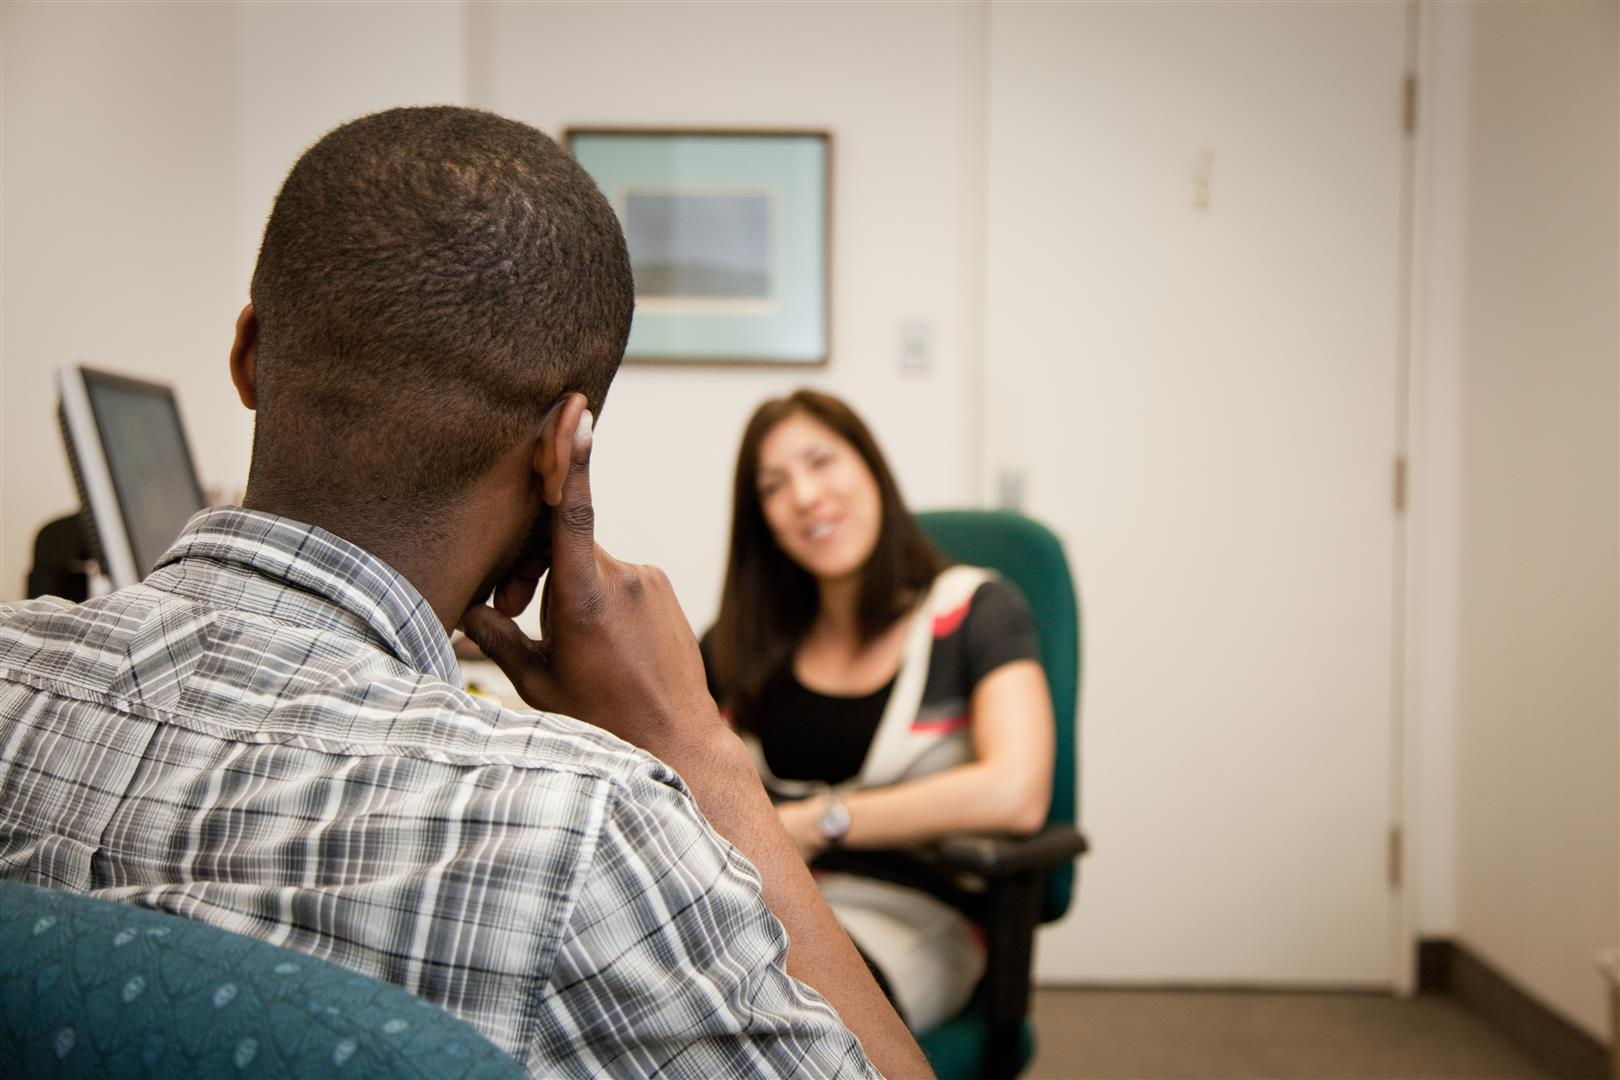 A man and a woman sitting face to face engaged in a conversation.